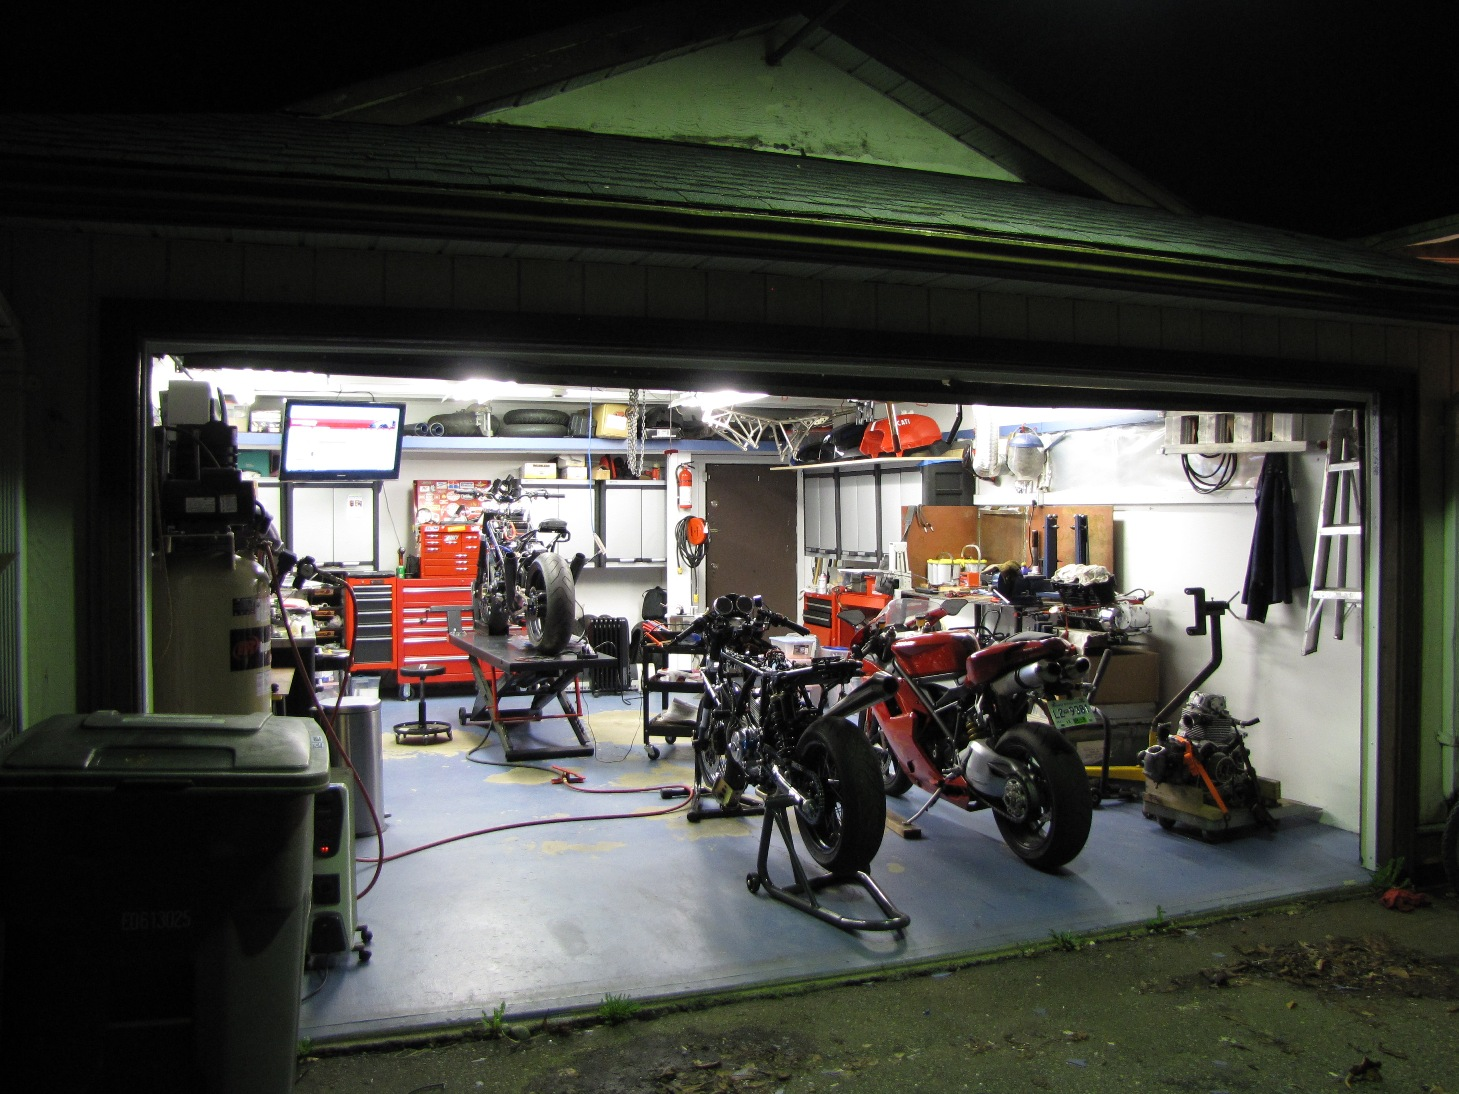 Motorcycle Man Cave Garage : Motorcycle garage ideas layout home mechanic